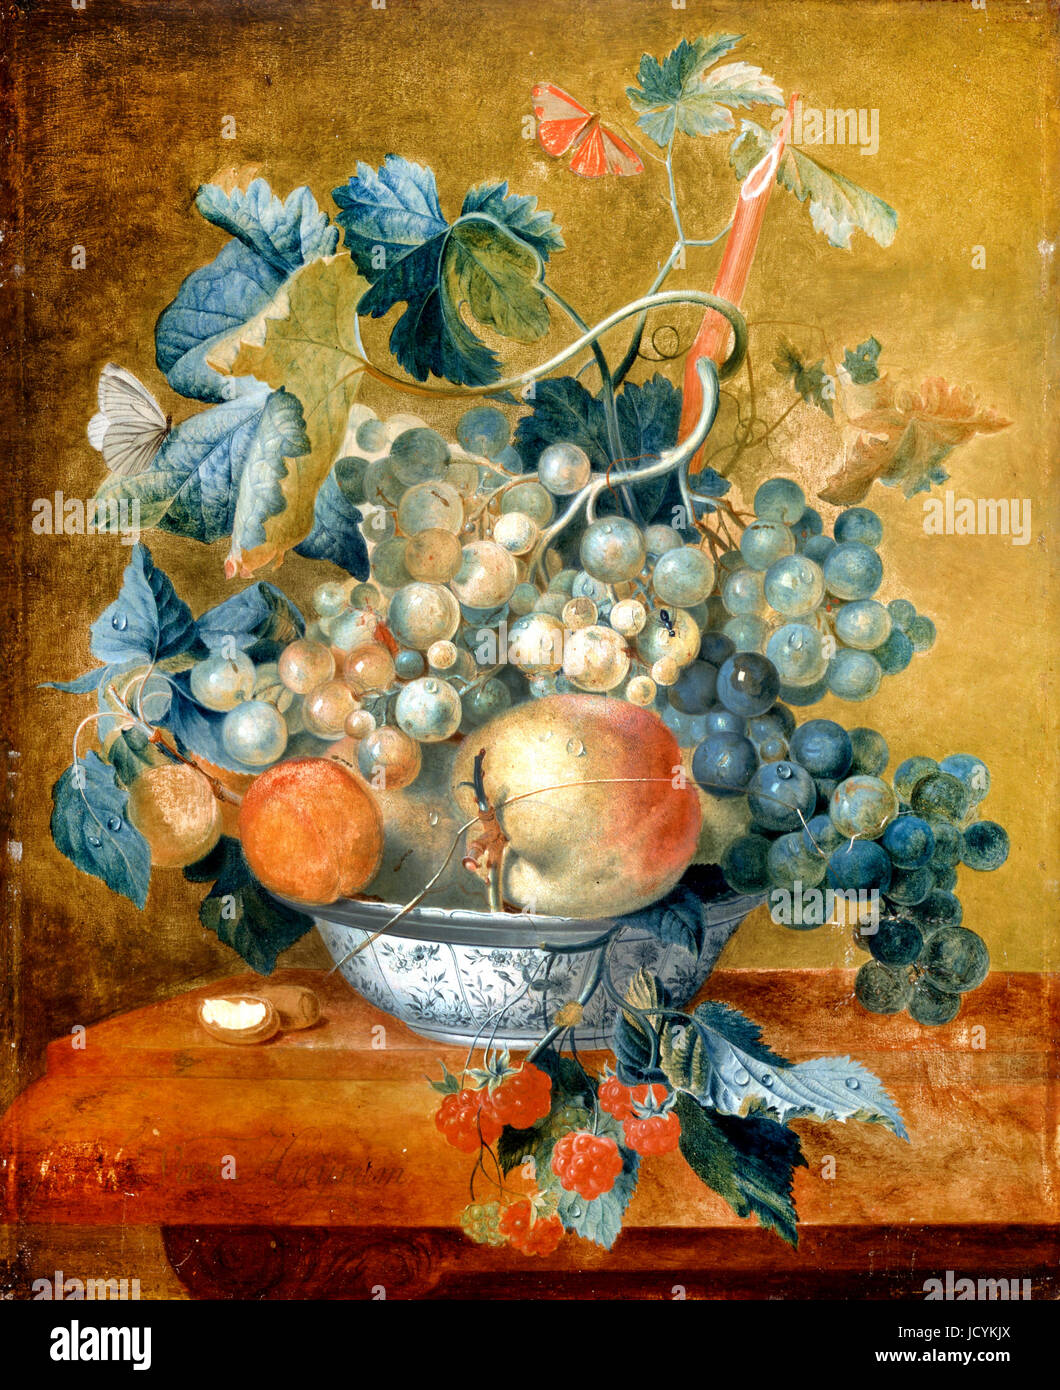 Jan van Huysum, A Delft Bowl with Fruit. Circa 1730. Oil on panel. Dulwich Picture Gallery, London, England. - Stock Image